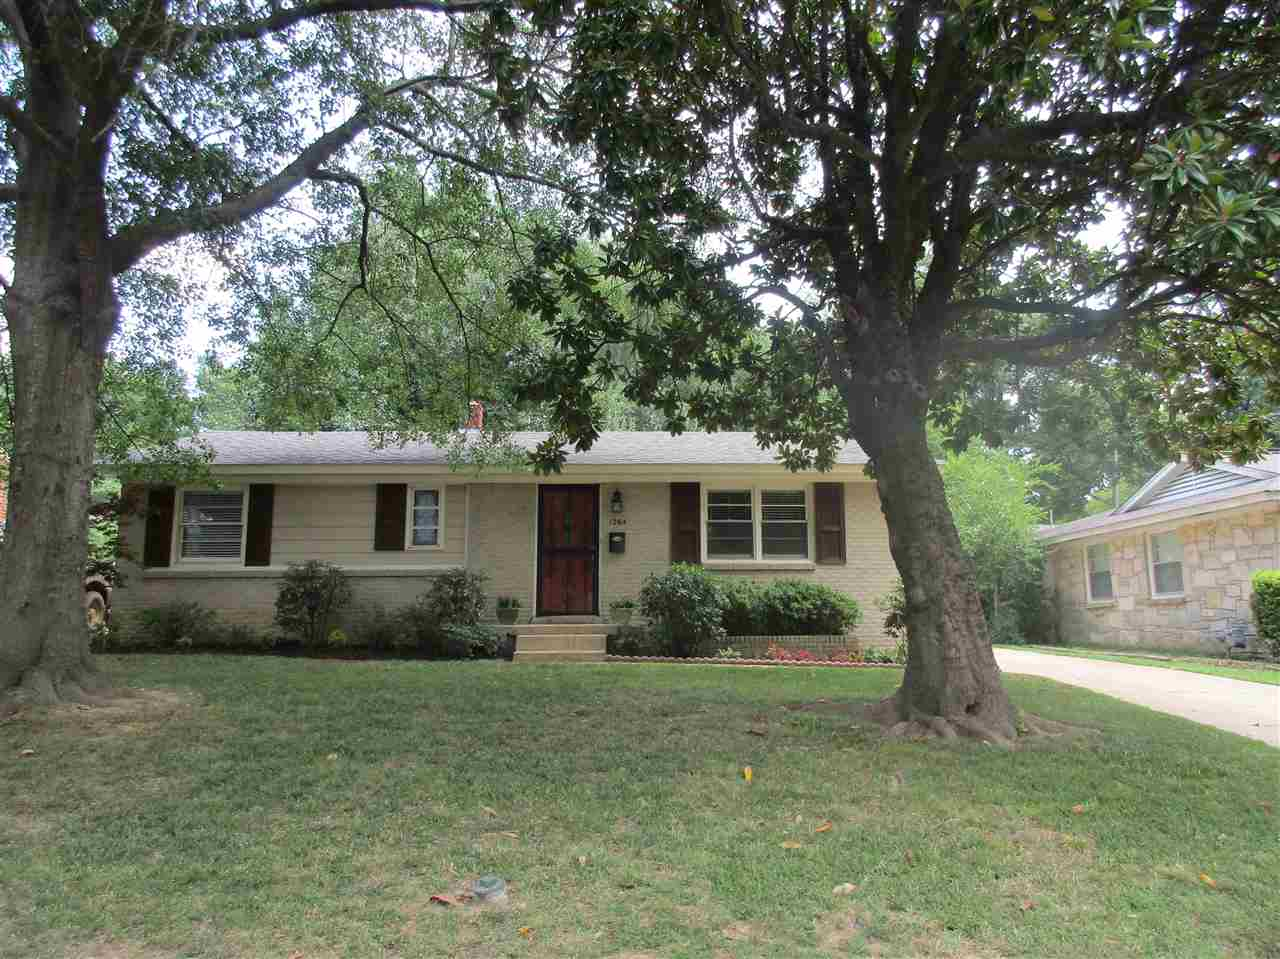 Property for sale at 1264 Woodston Rd, Memphis,  TN 38117